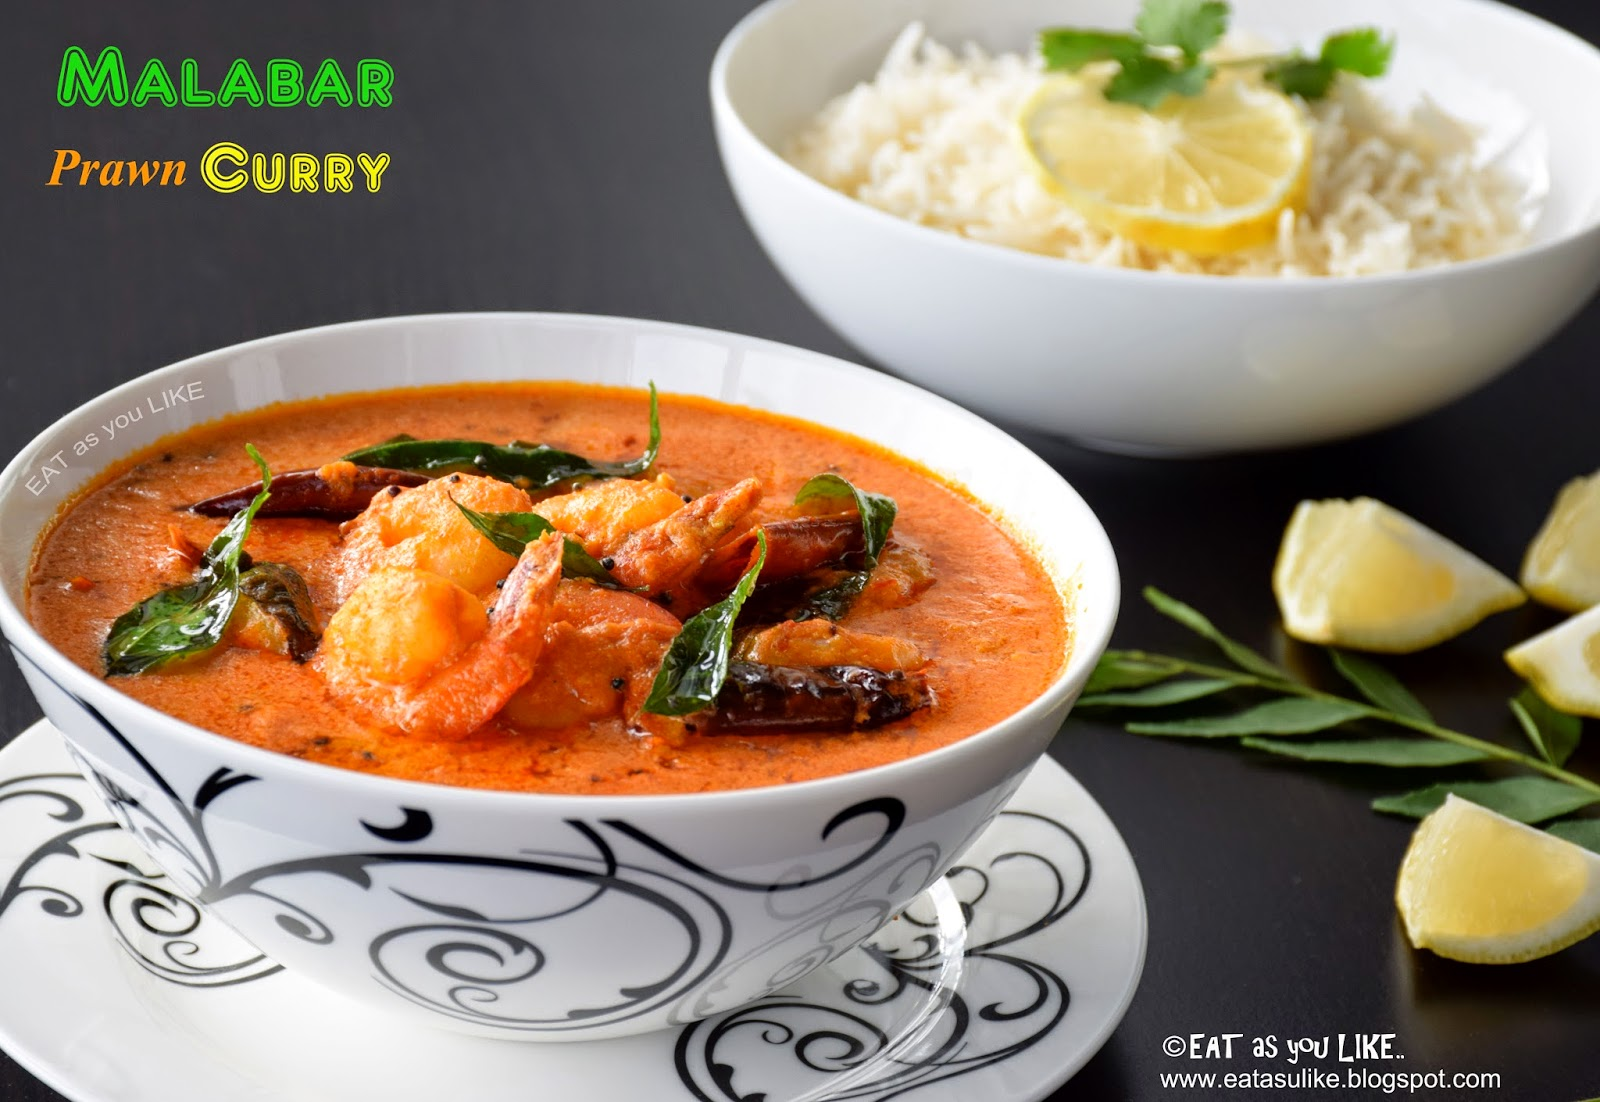 http://eatasulike.blogspot.com.au/2014/07/malabar-prawn-curry.html